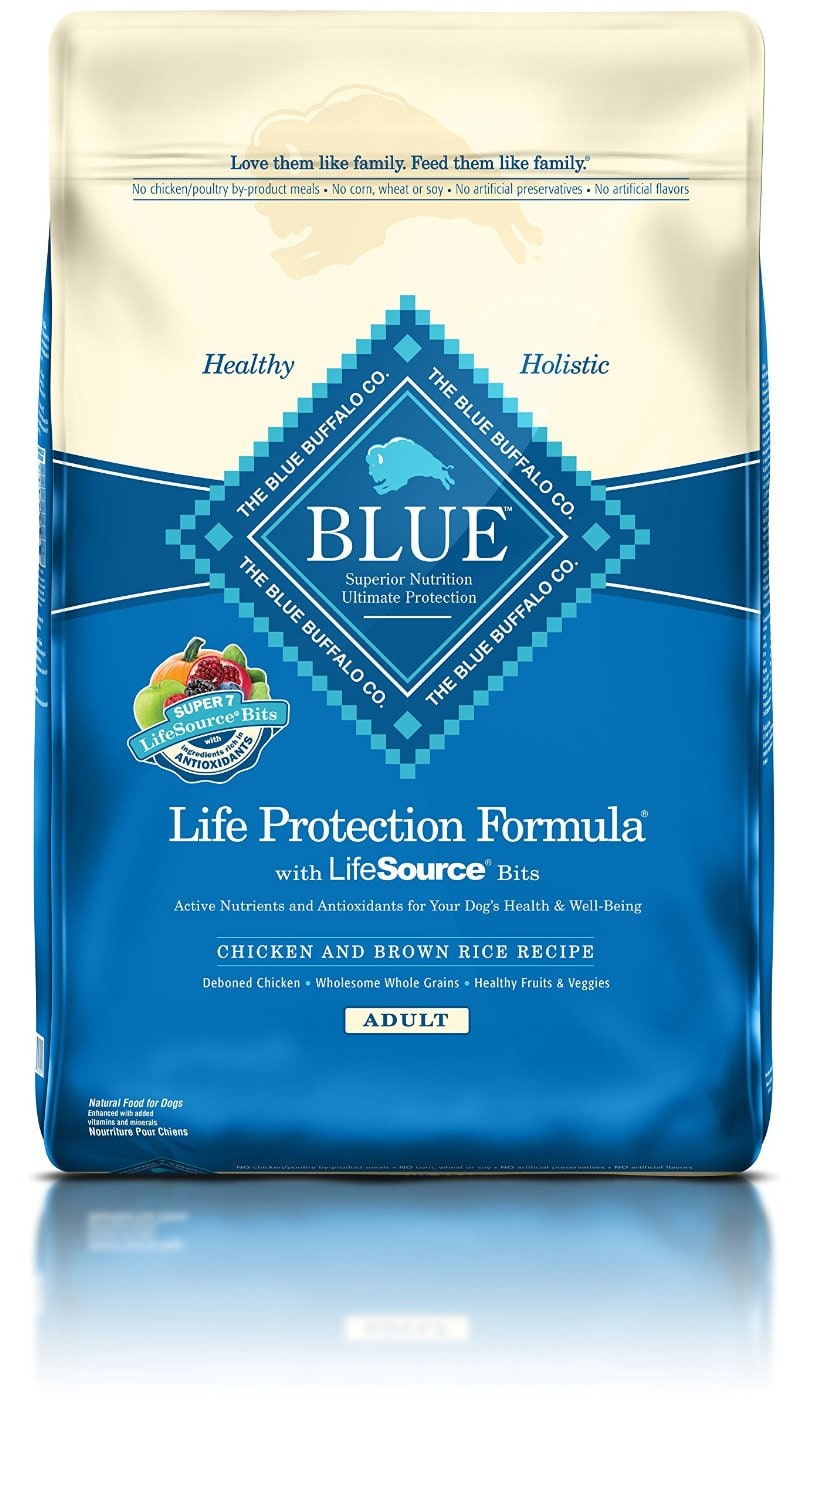 Blue Buffalo Dry Dog Food 30lb - 25% off with auto ship